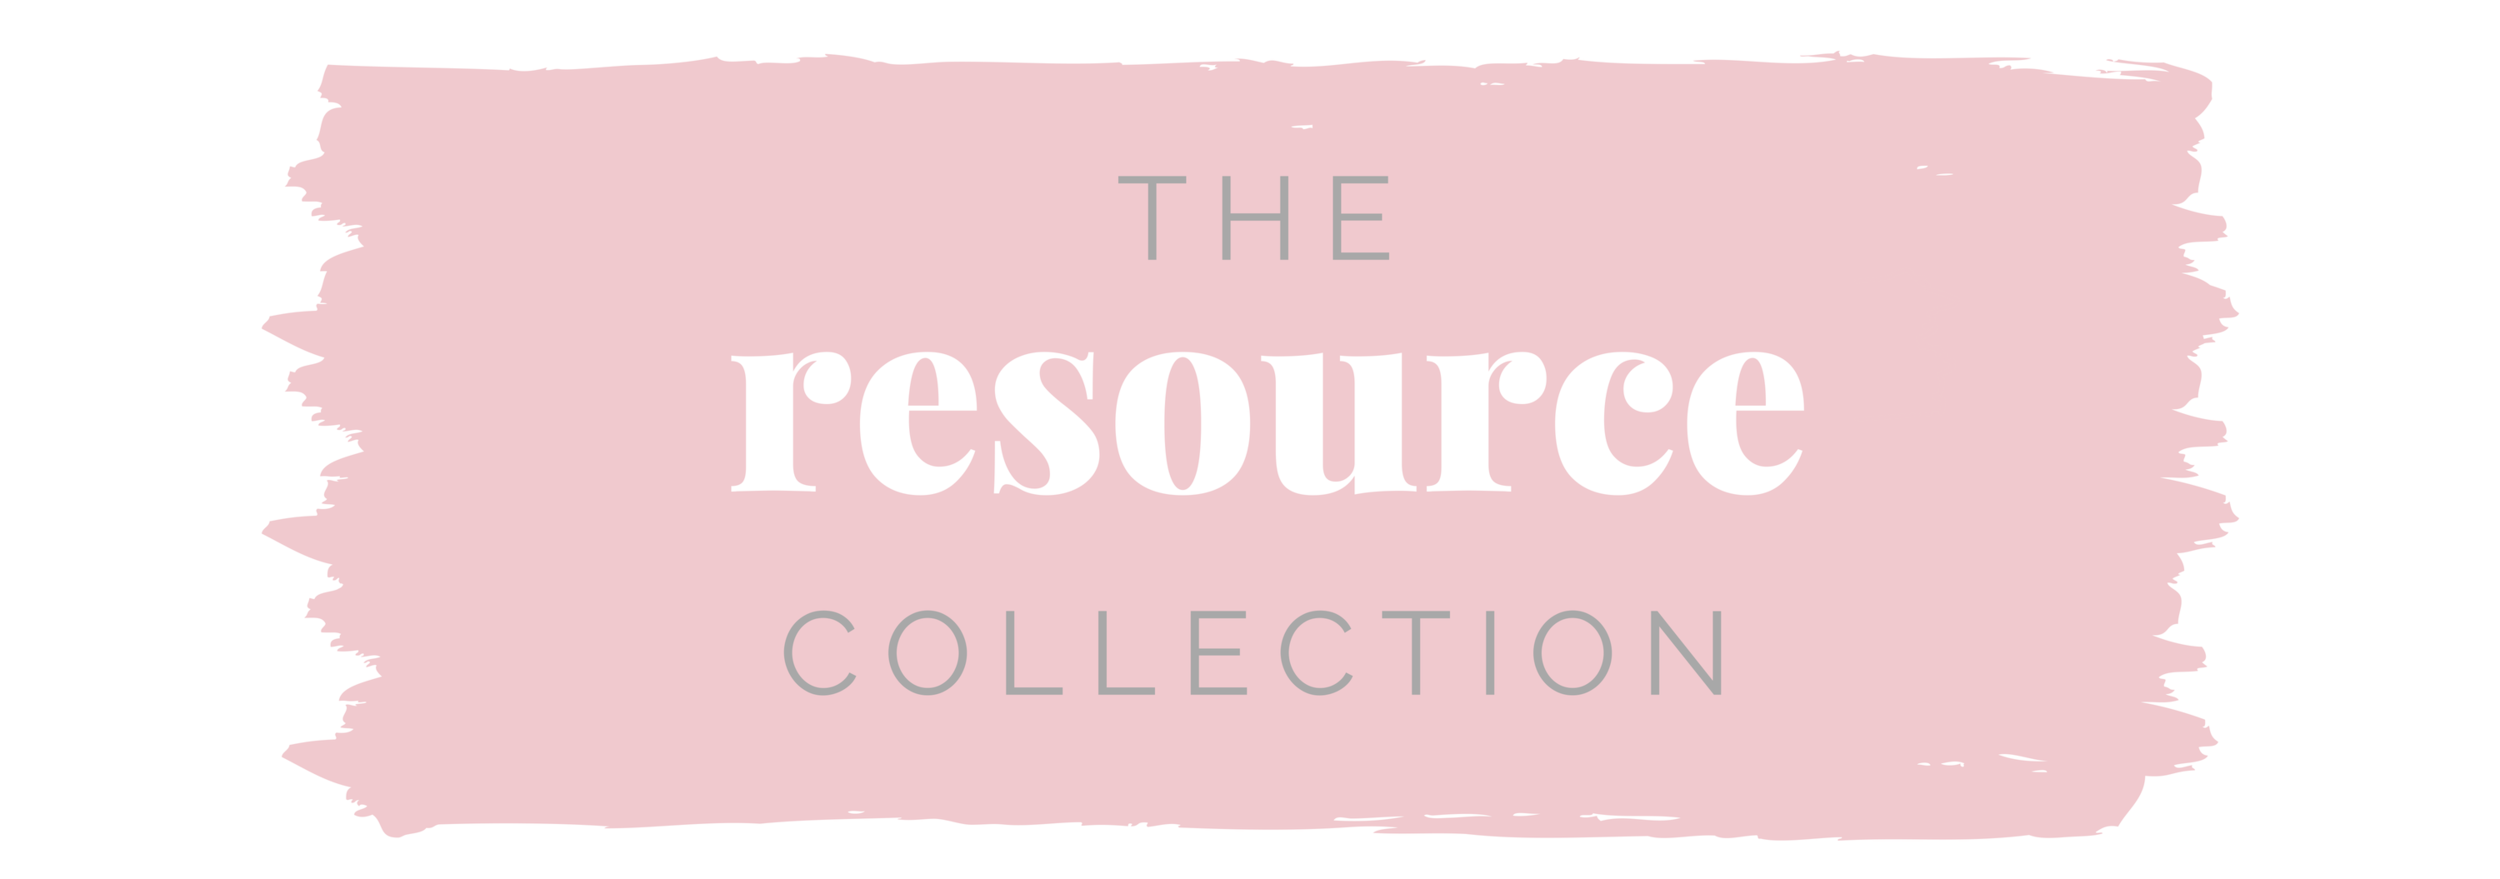 the resource collection.png